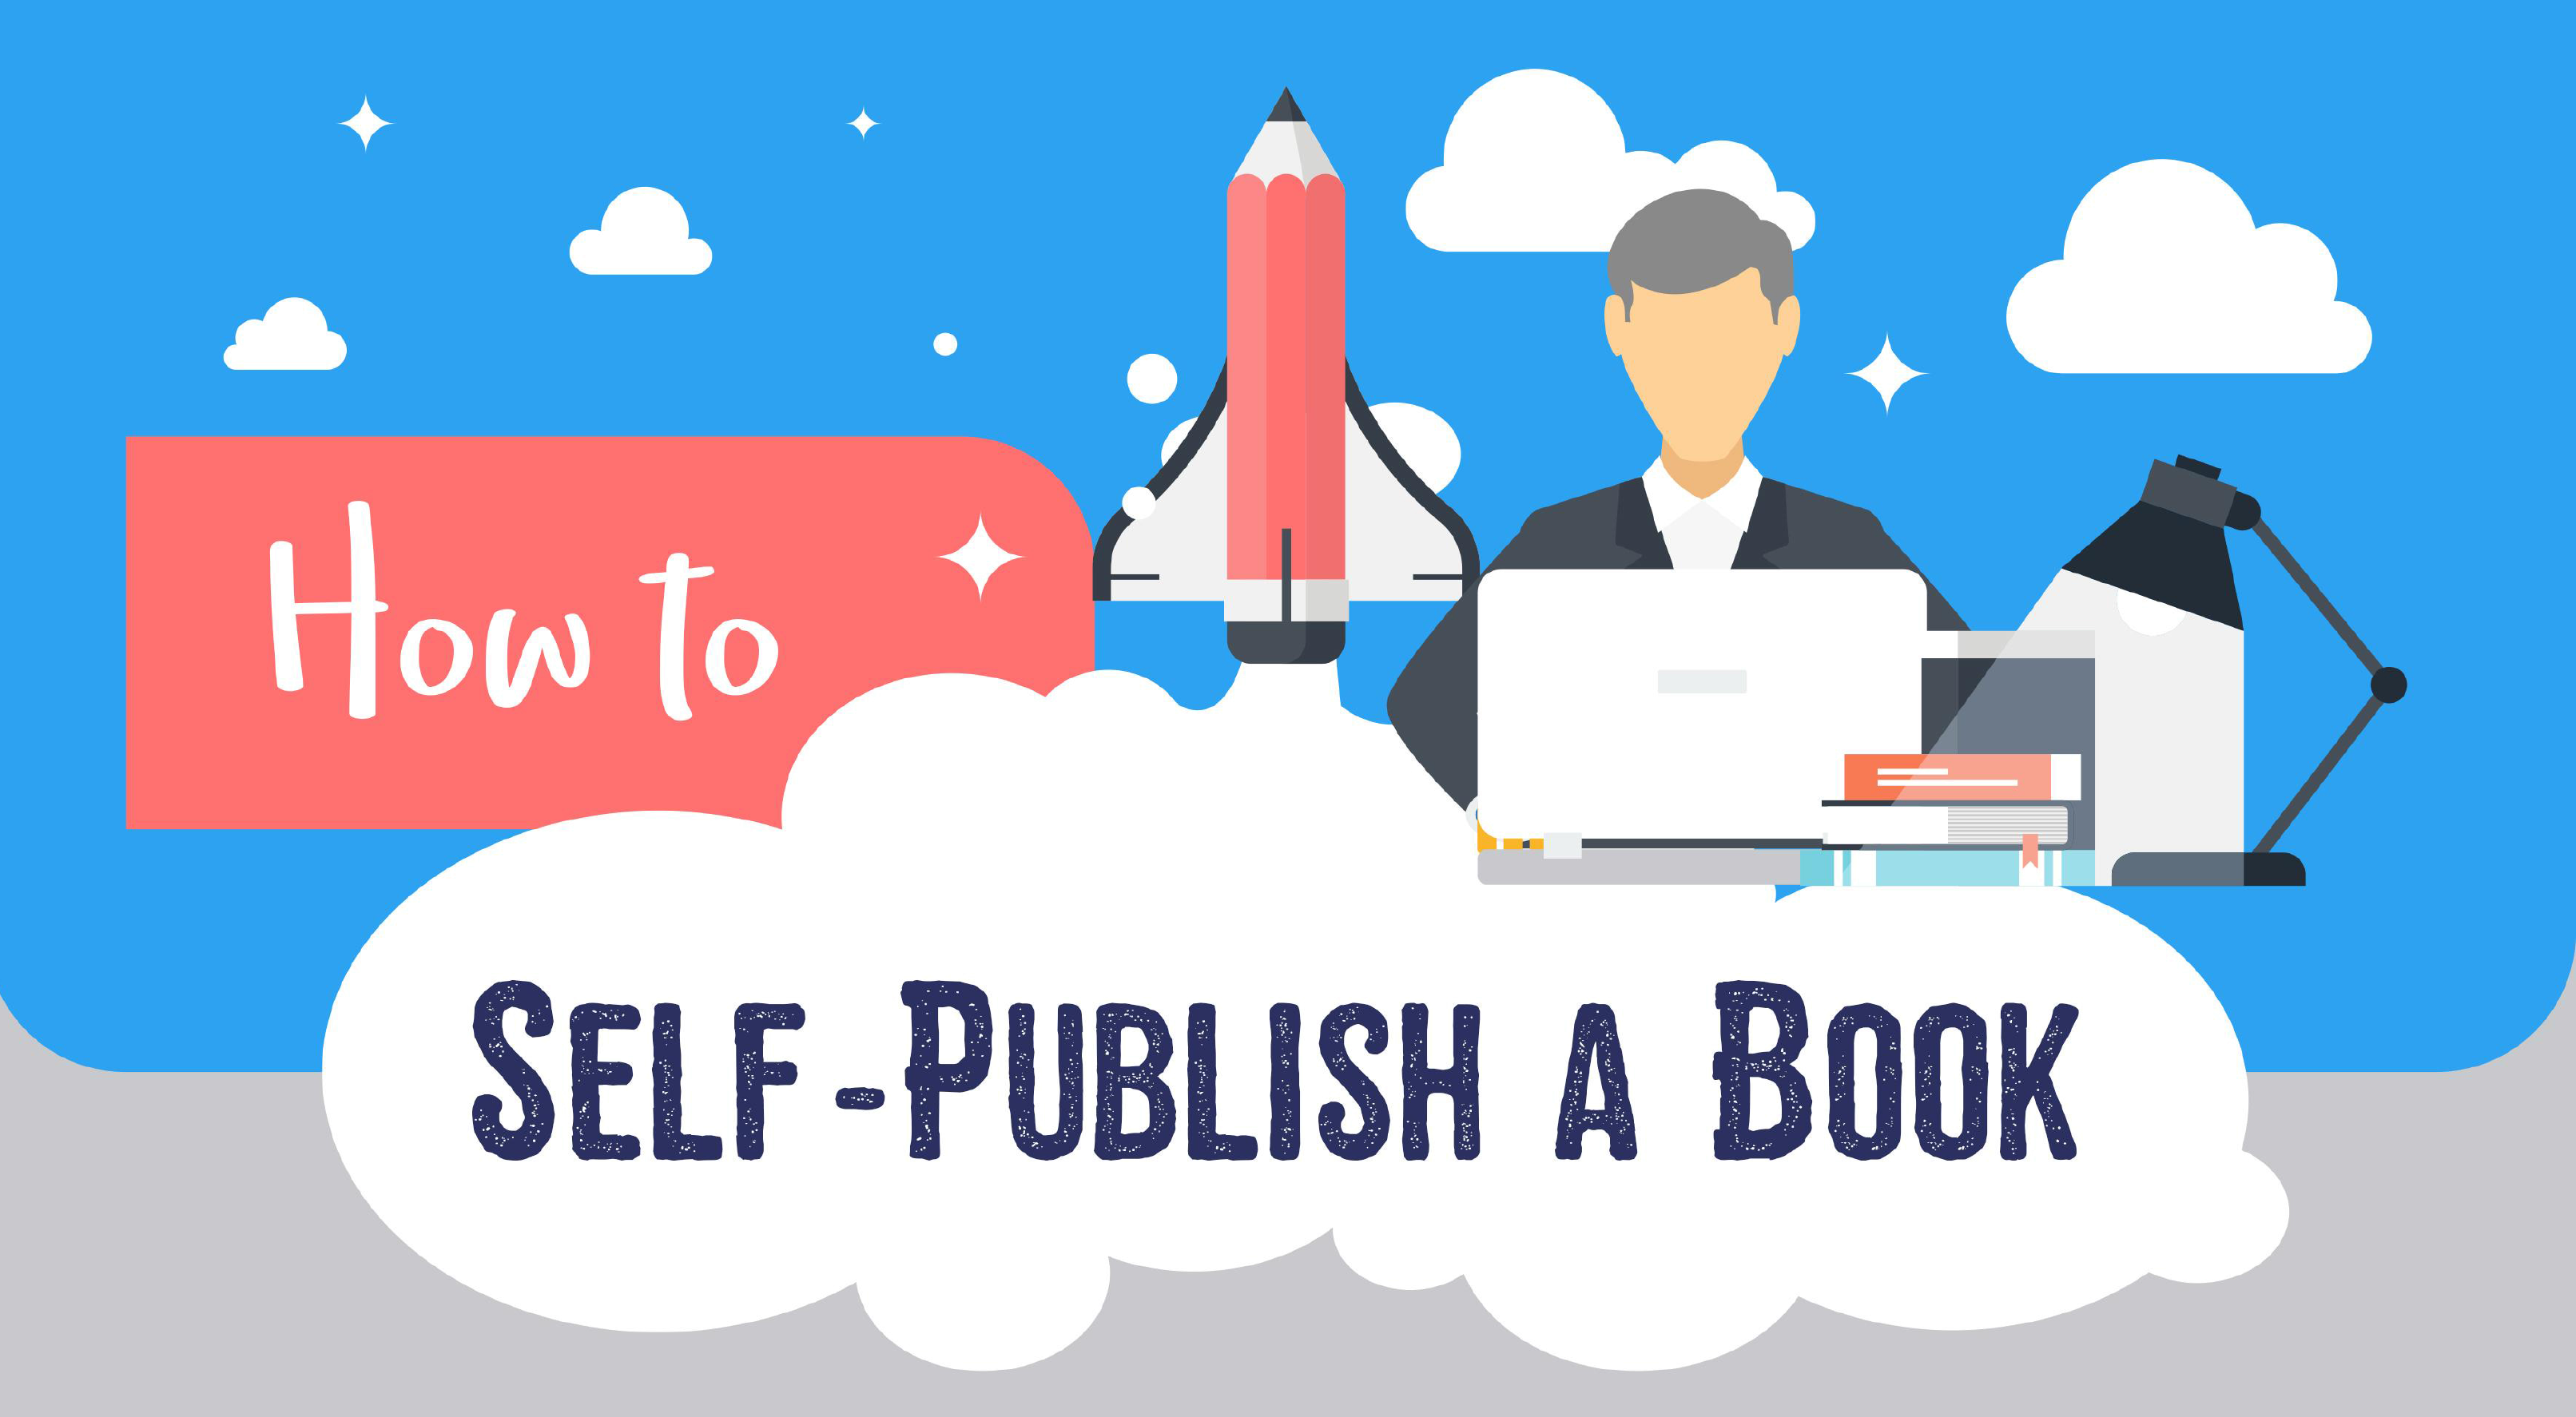 How to Self-Publish a Book – A Visual Guide (Infographic)